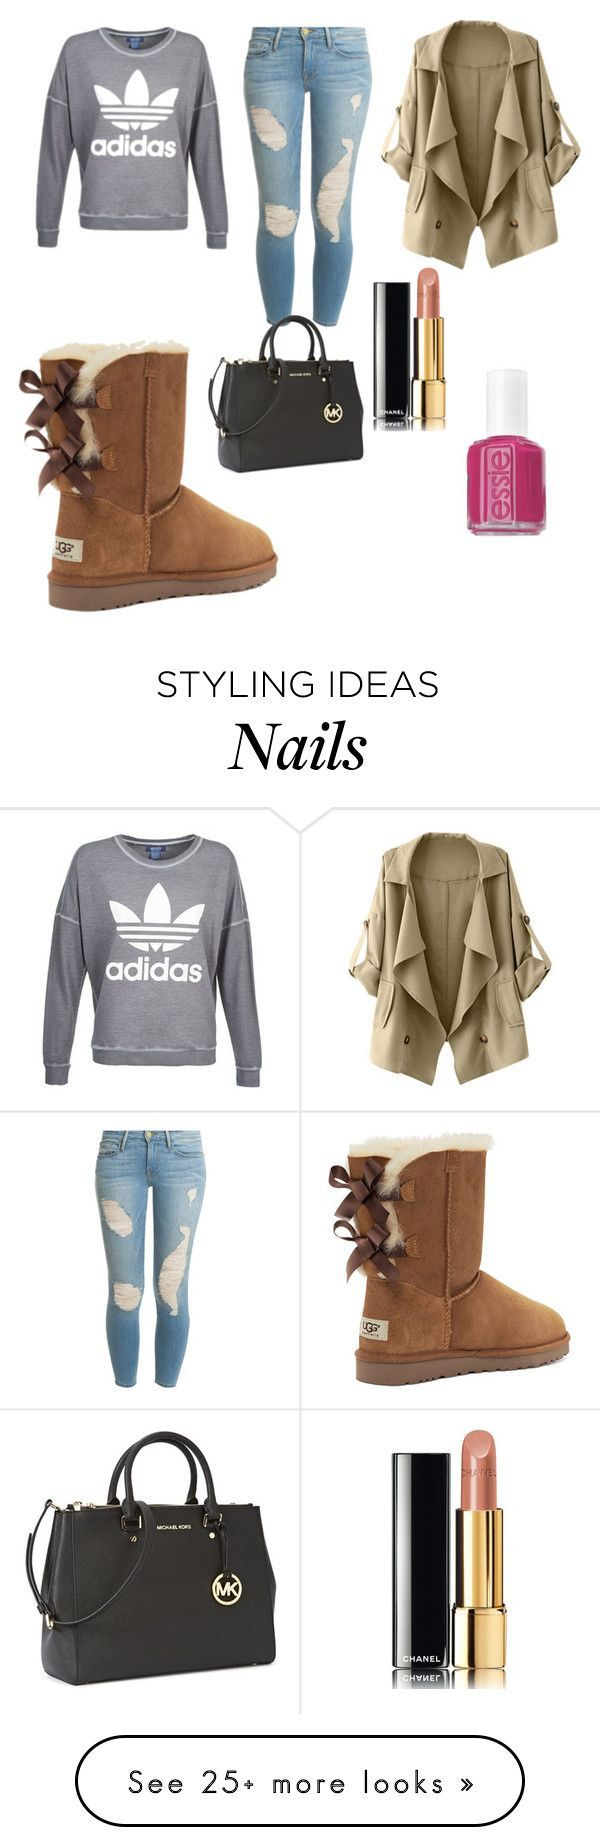 """""""UGG Boots"""" by vanessa-82 on Polyvore featuring Victoria's Secret, Frame Denim, adidas, Michael Kors, Chanel and Essie"""